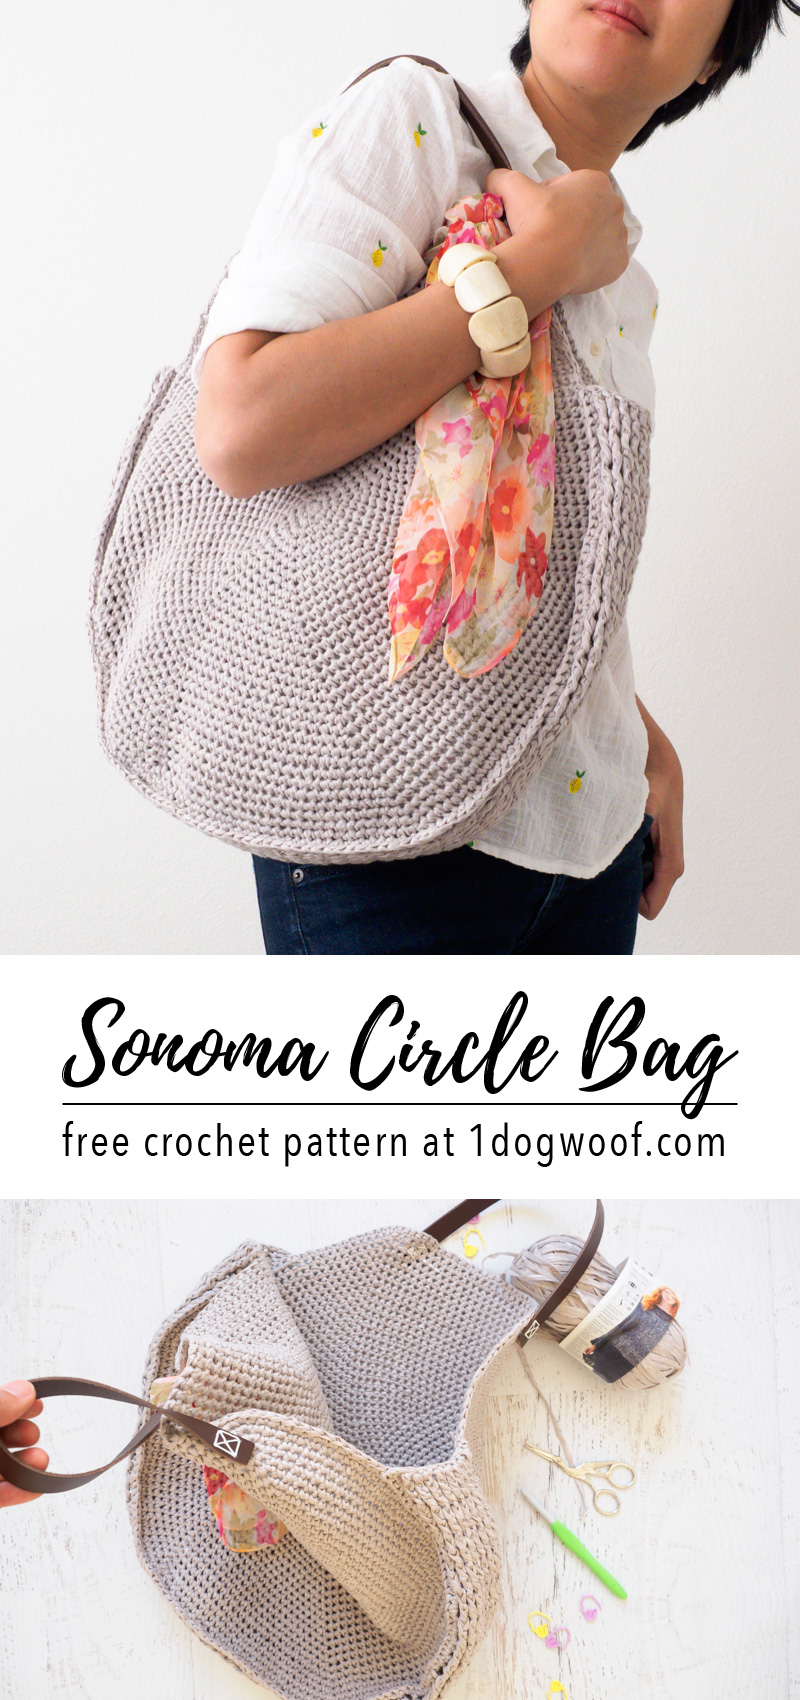 Sonoma Circle Bag Crochet Pattern One Dog Woof